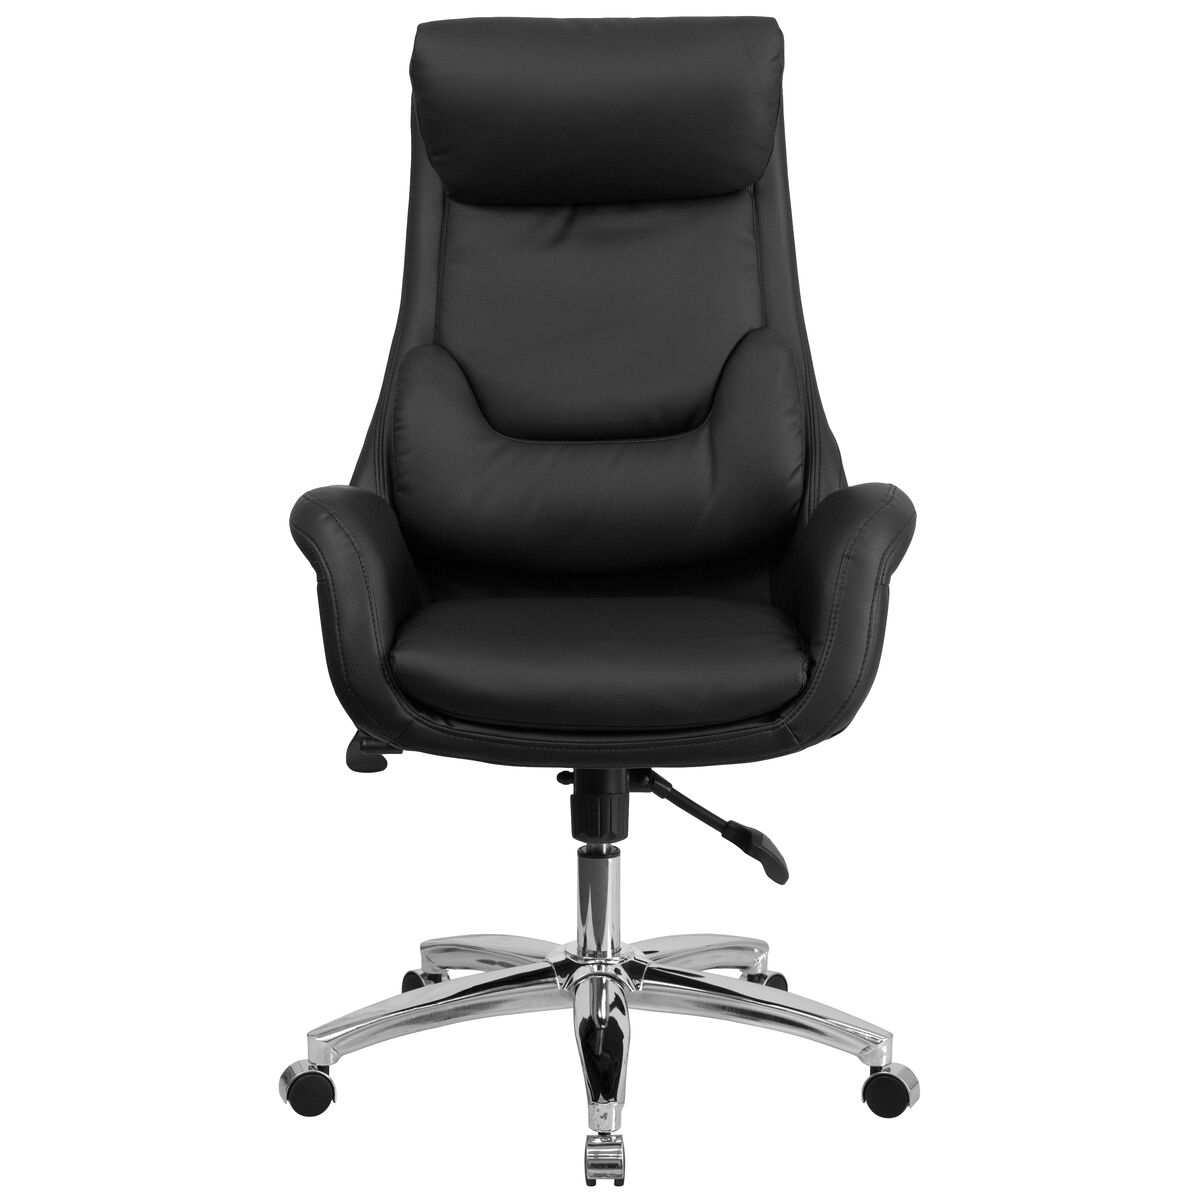 black high back leather chair bt 90027oh gg bizchair com